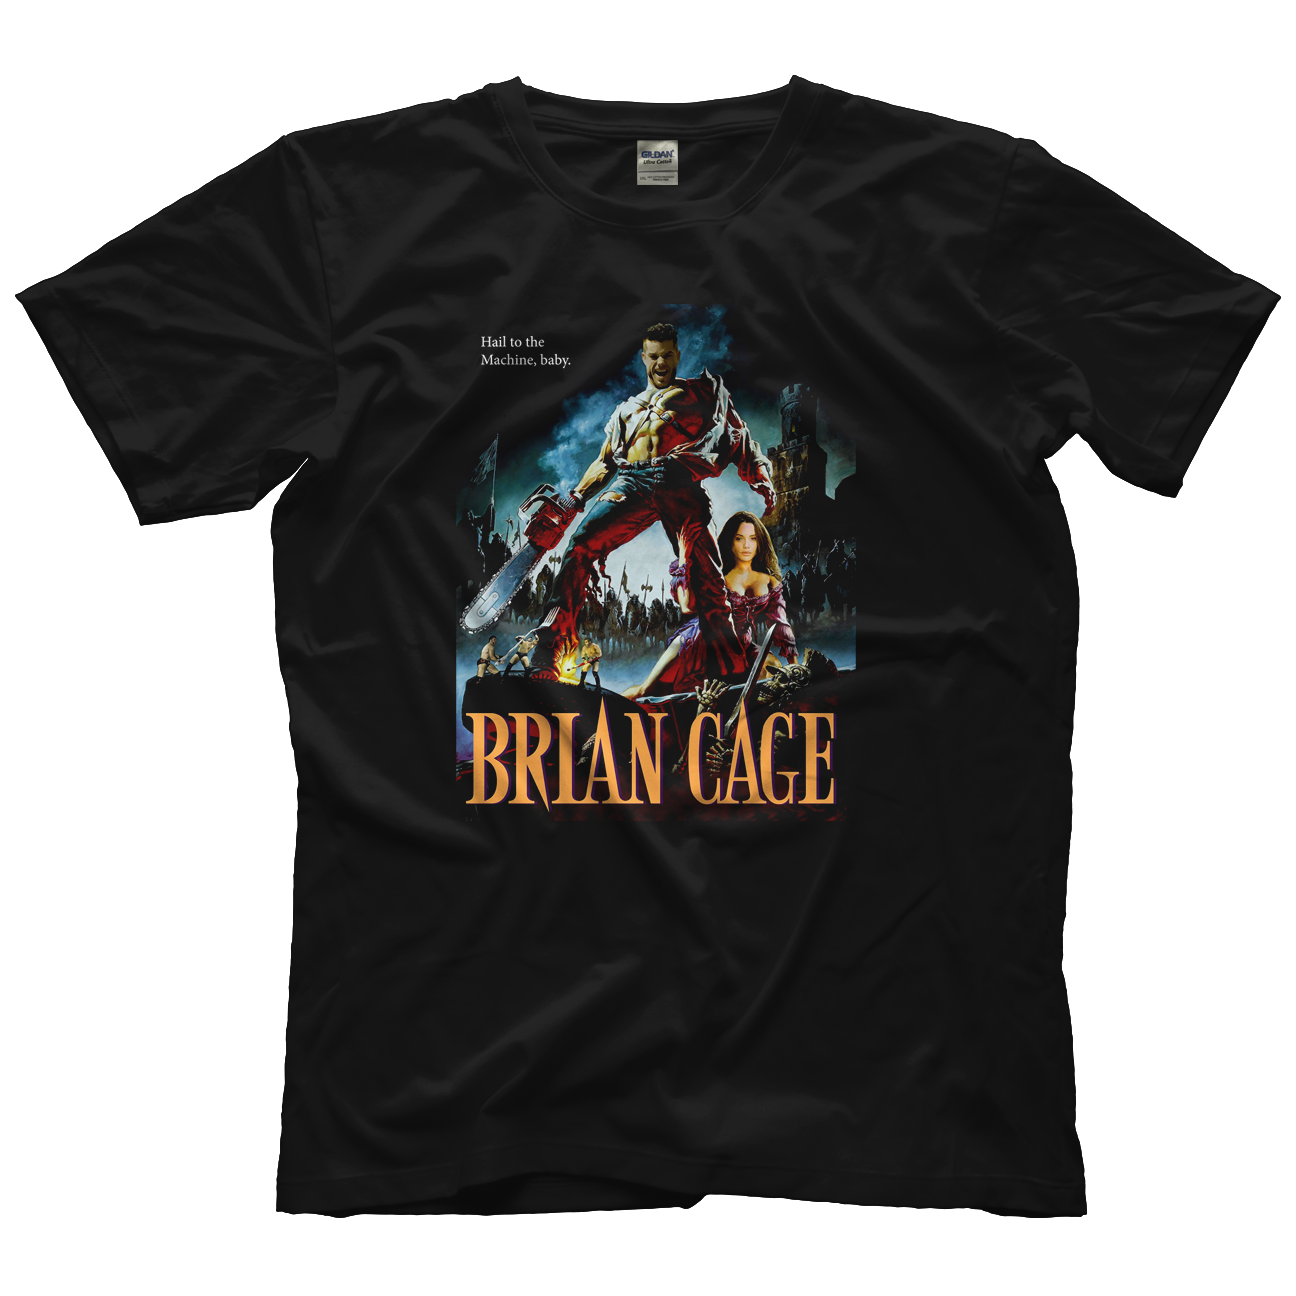 Brian Cage Army of Cage T-shirt